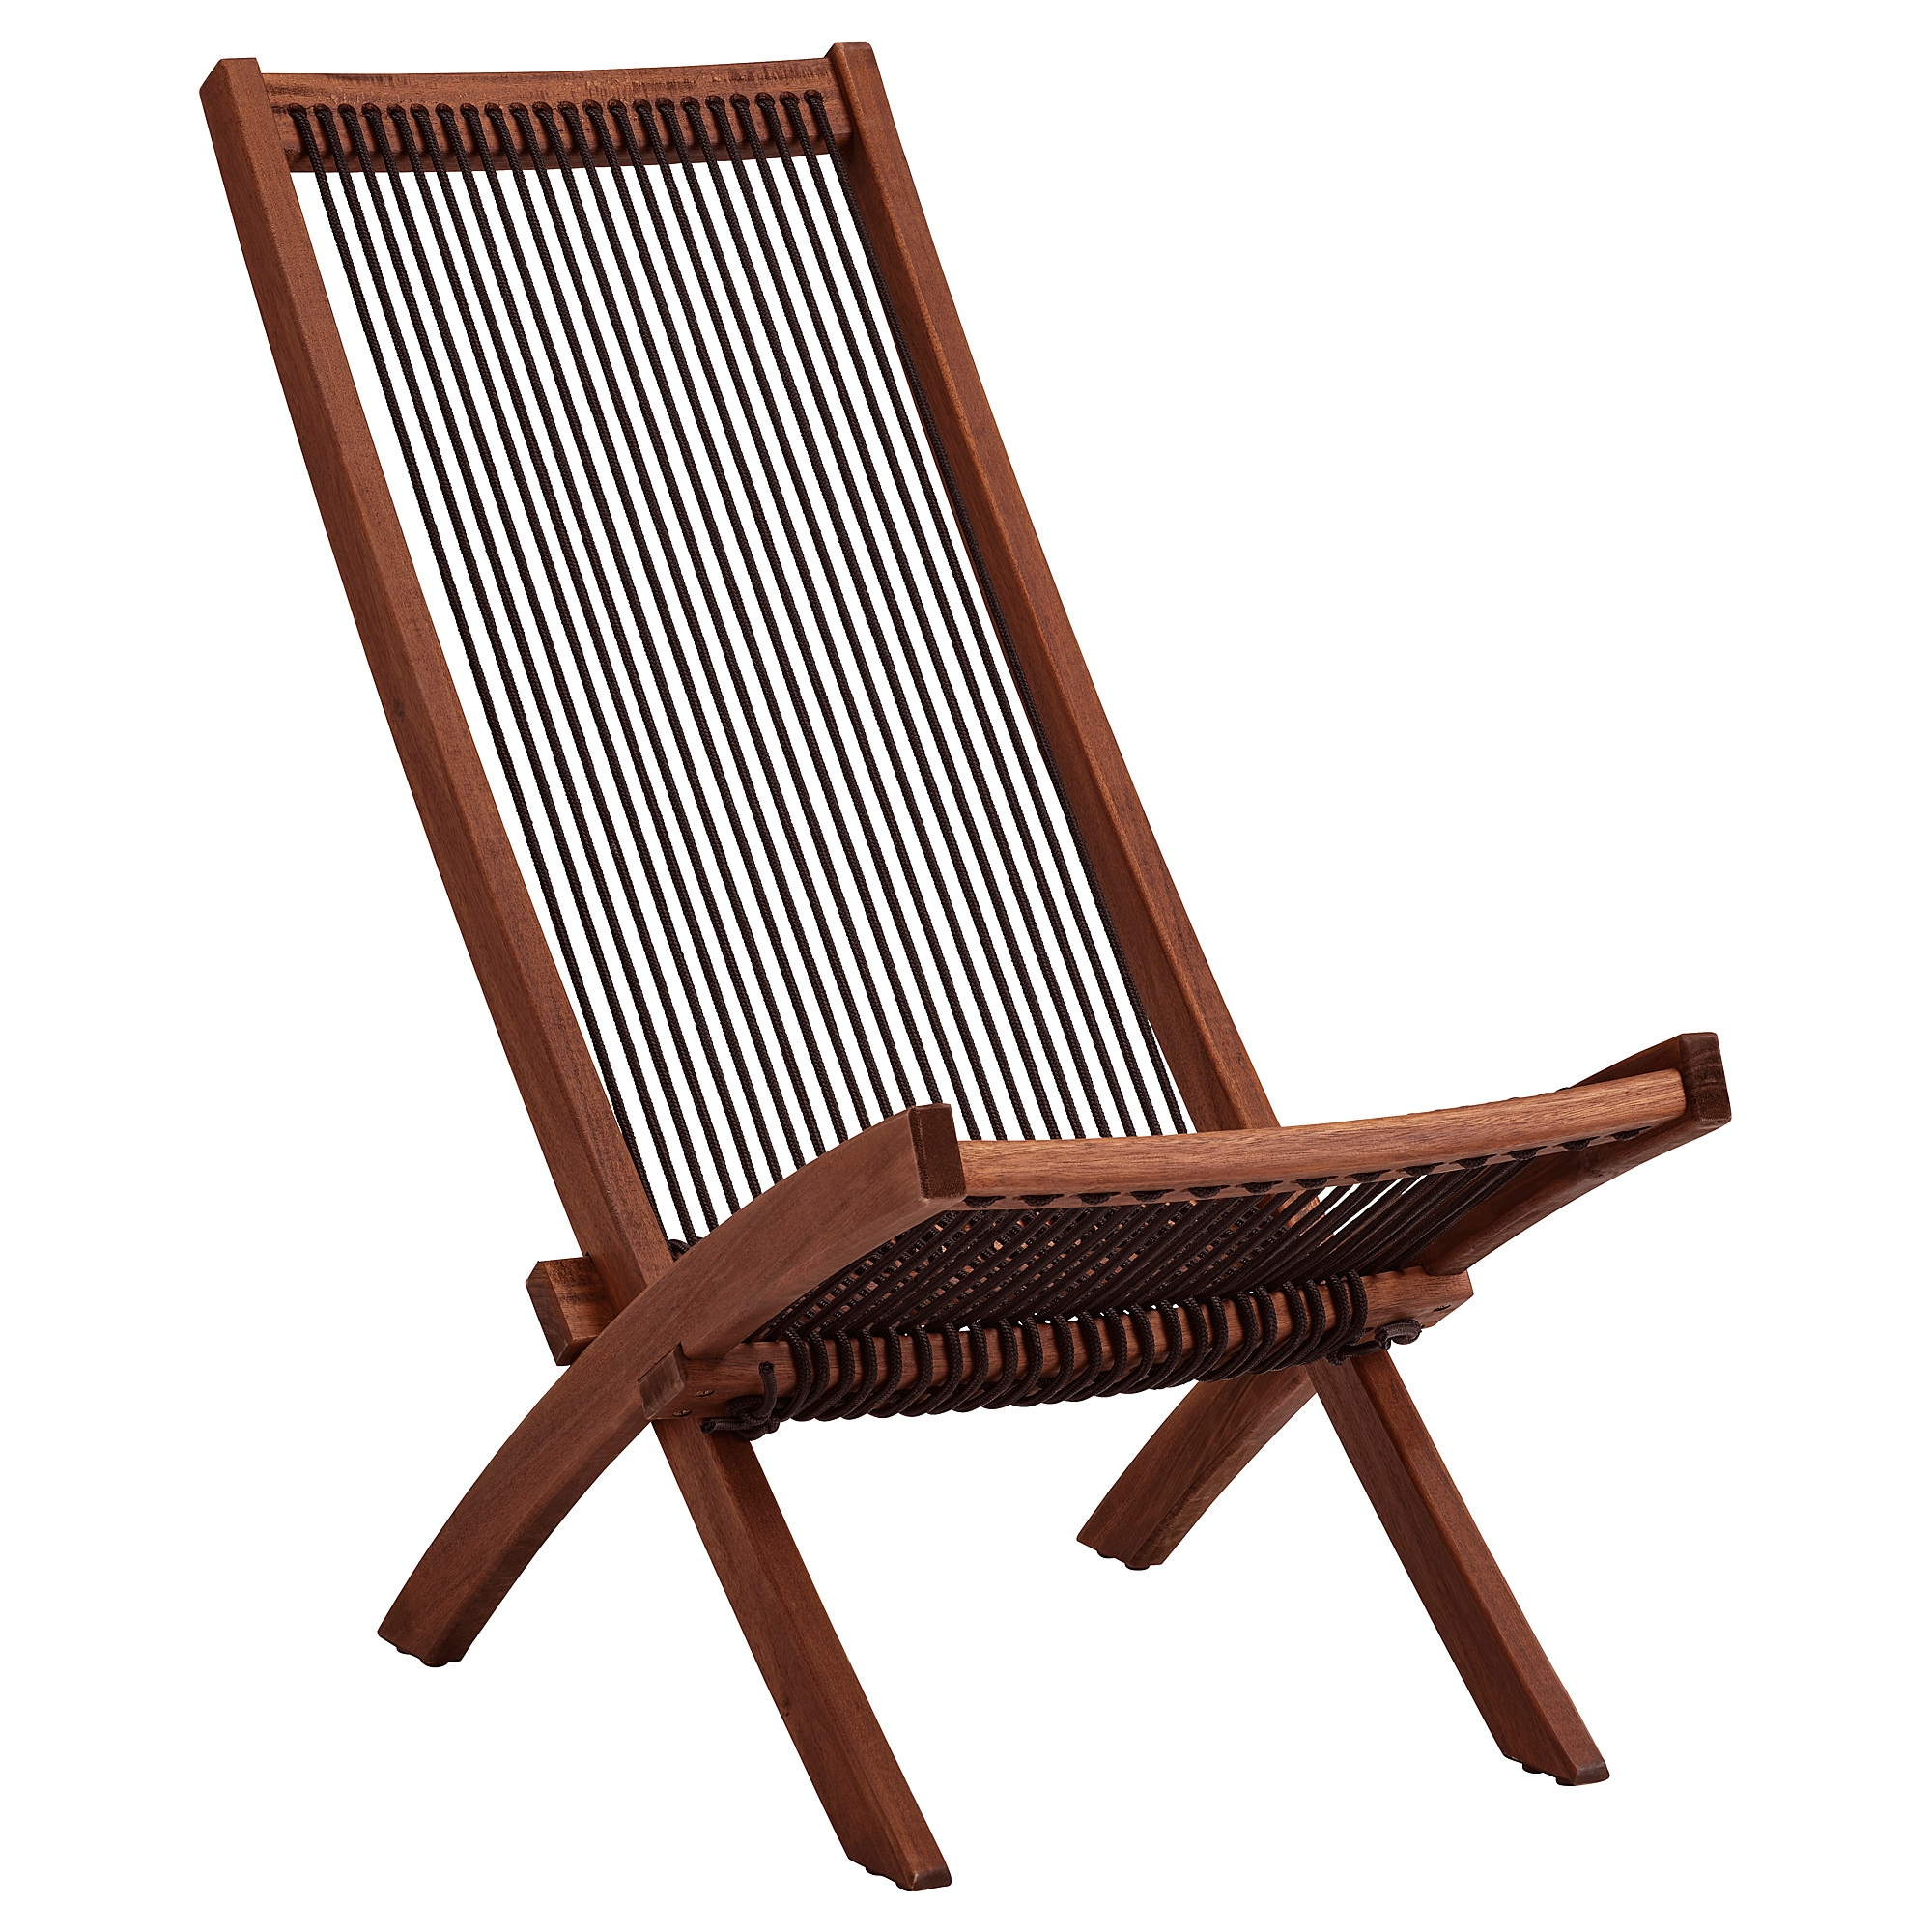 Chaise, Outdoor Brommö Brown Stained Black, Brown Intended For Most Recently Released Brown Folding Patio Chaise Lounger Chairs (View 9 of 25)